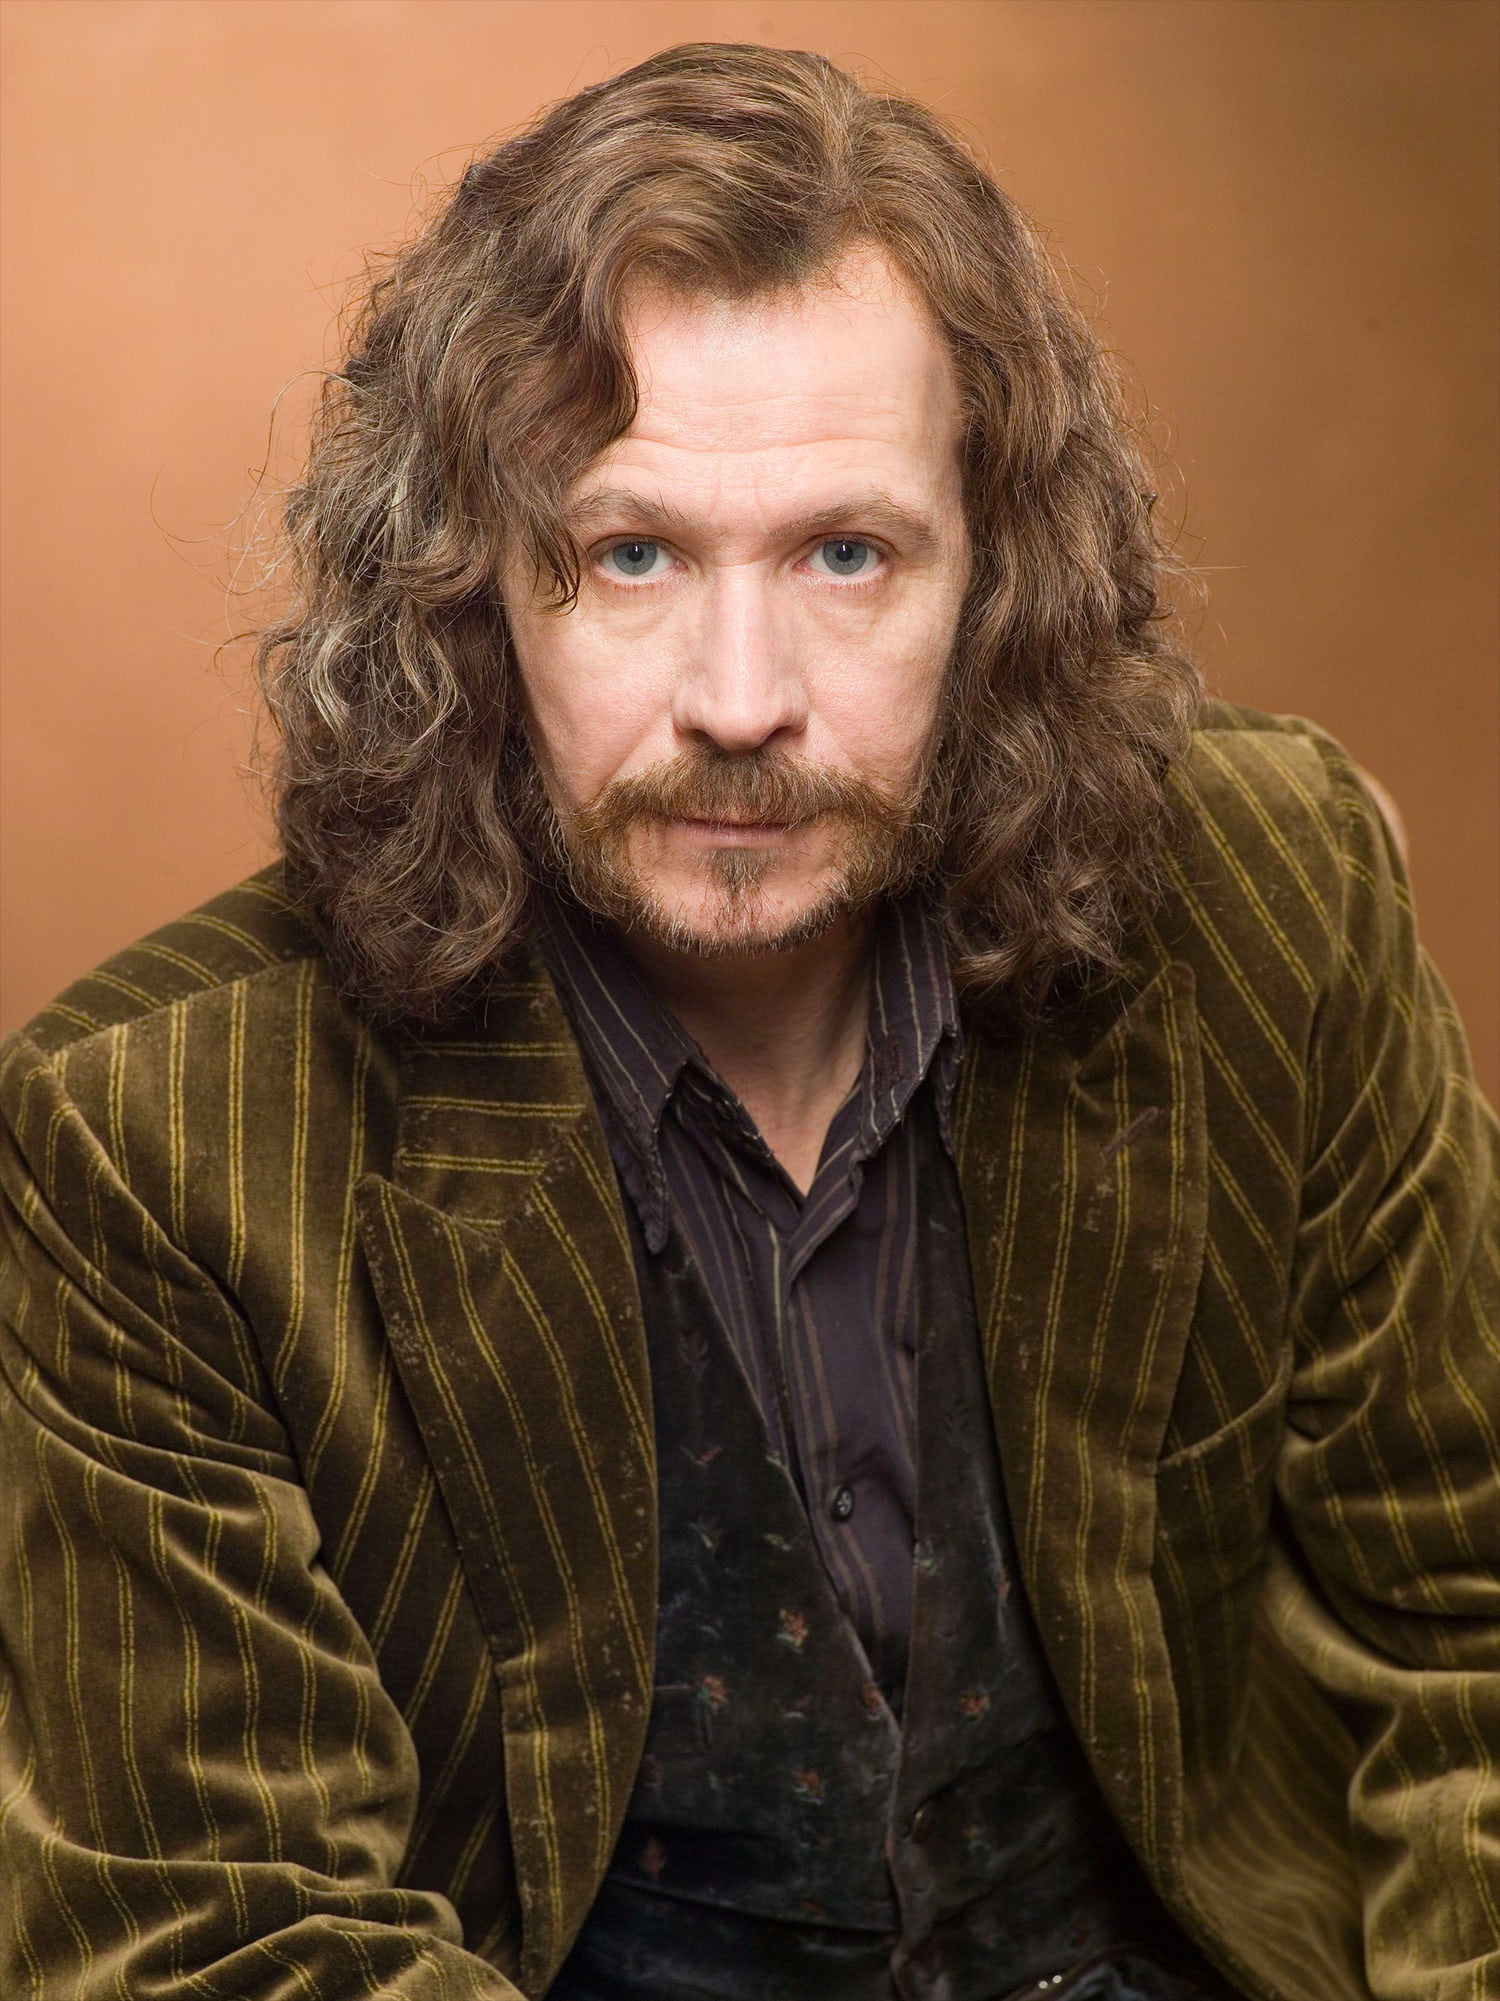 Portrait of Sirius Black